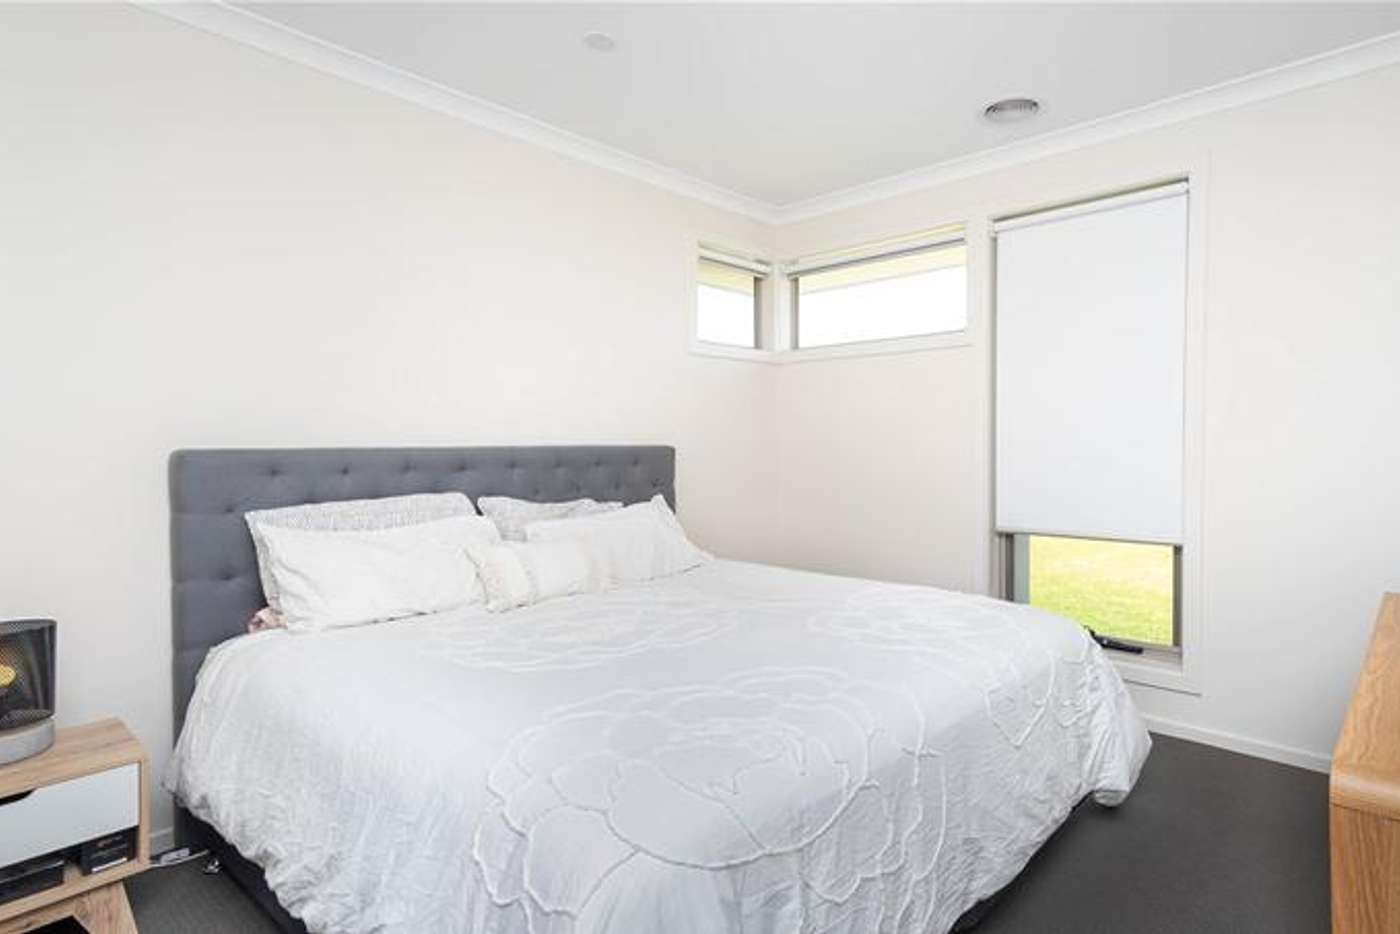 Fifth view of Homely house listing, 9 Redwood Drive, Mildura VIC 3500